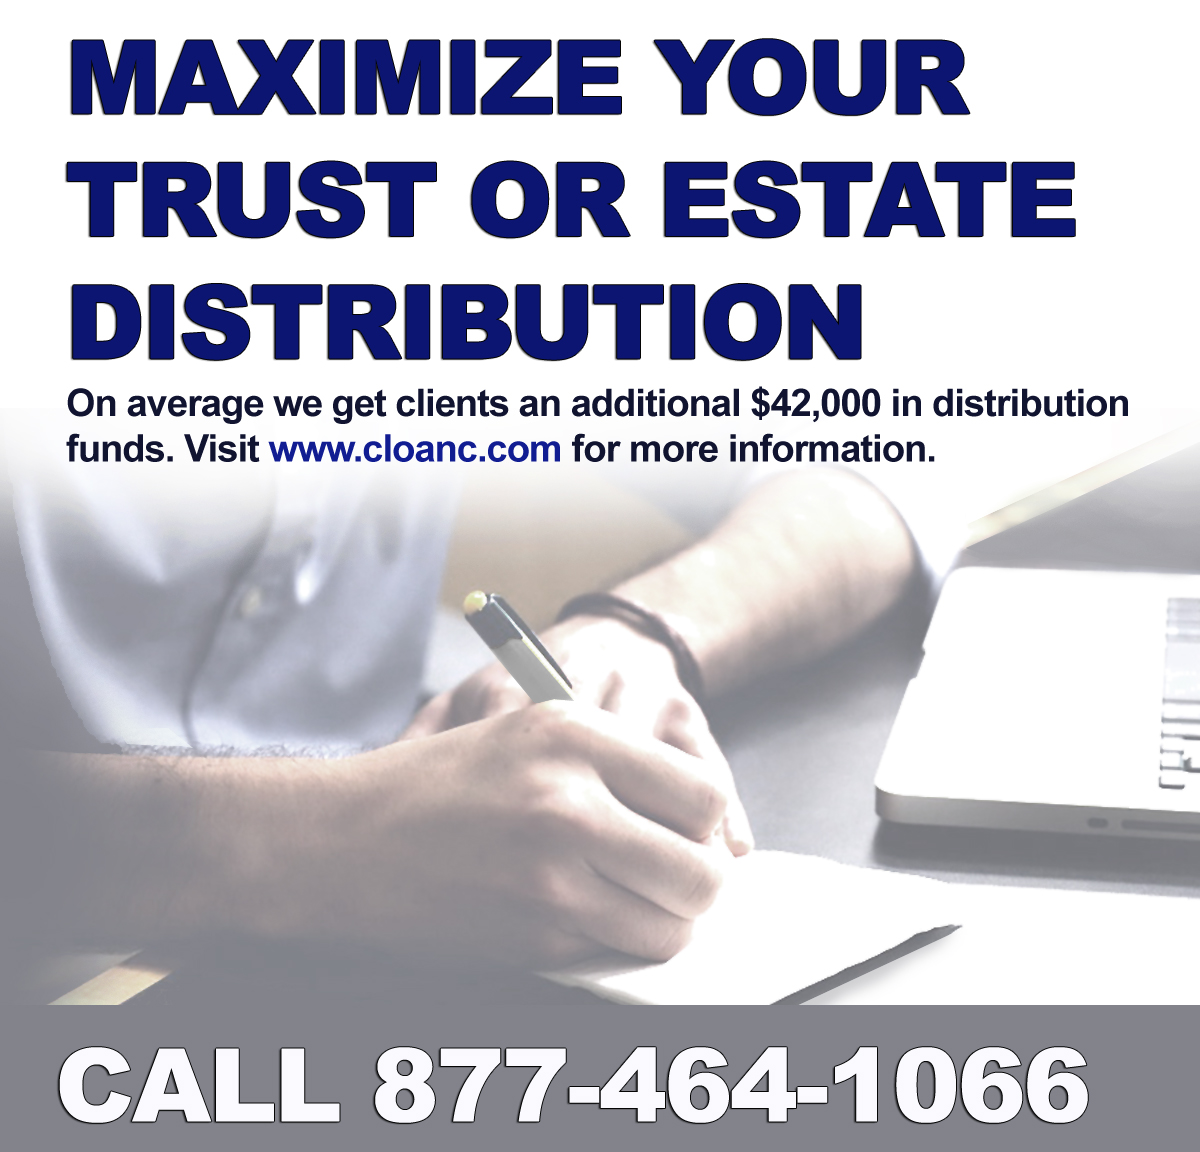 We Maximize Trust Distributions